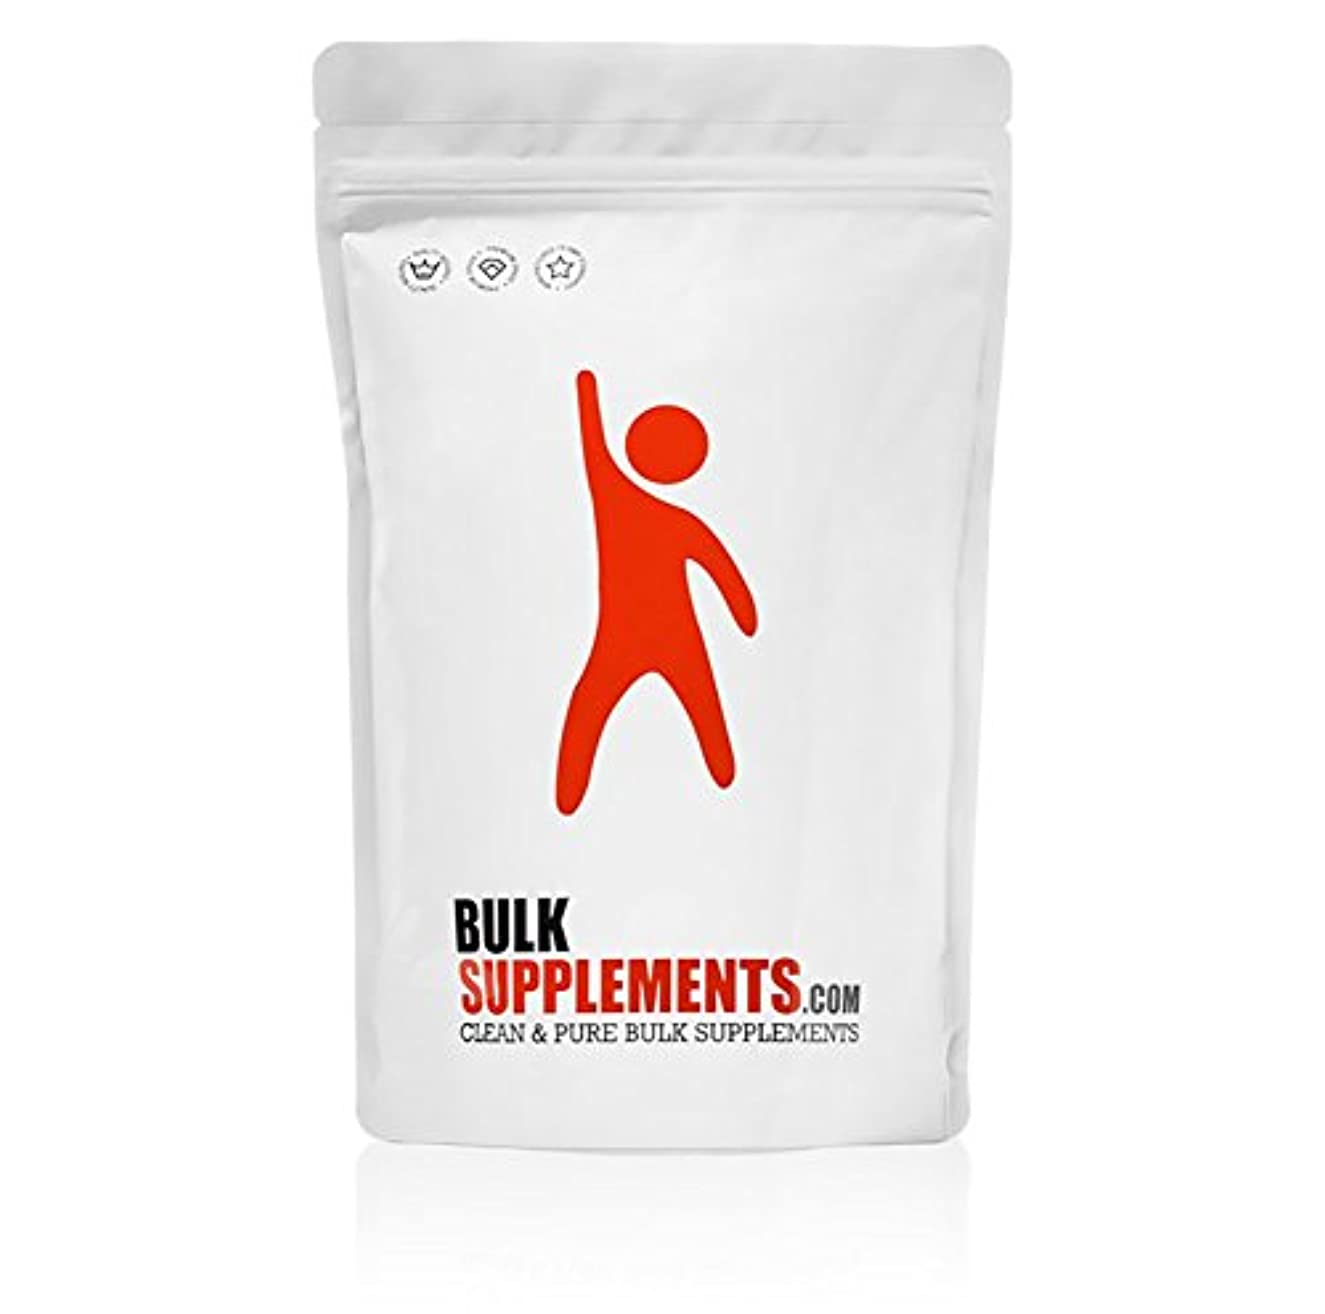 Whey Protein Powder Isolate by BulkSupplements (1 kilograms)   Clean & Pure Unflavored 90% Isolate for Men & Women   Build Muscle Mass & Burn Fat Fast